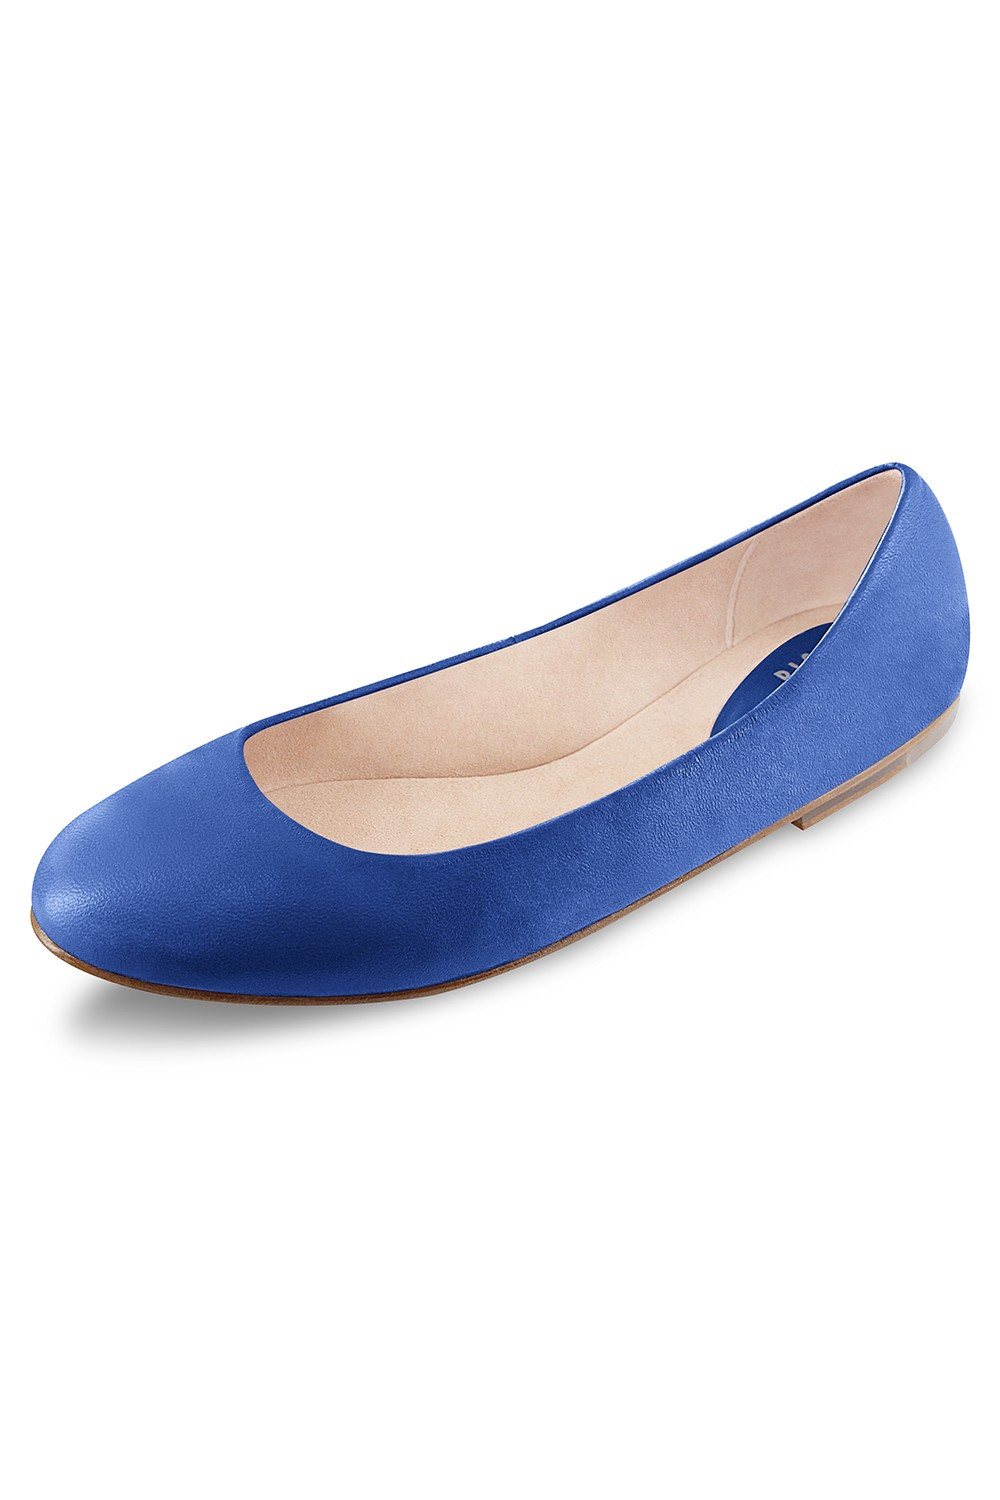 Arabian Ballerina Ballet Flat Womens Fashion Shoes